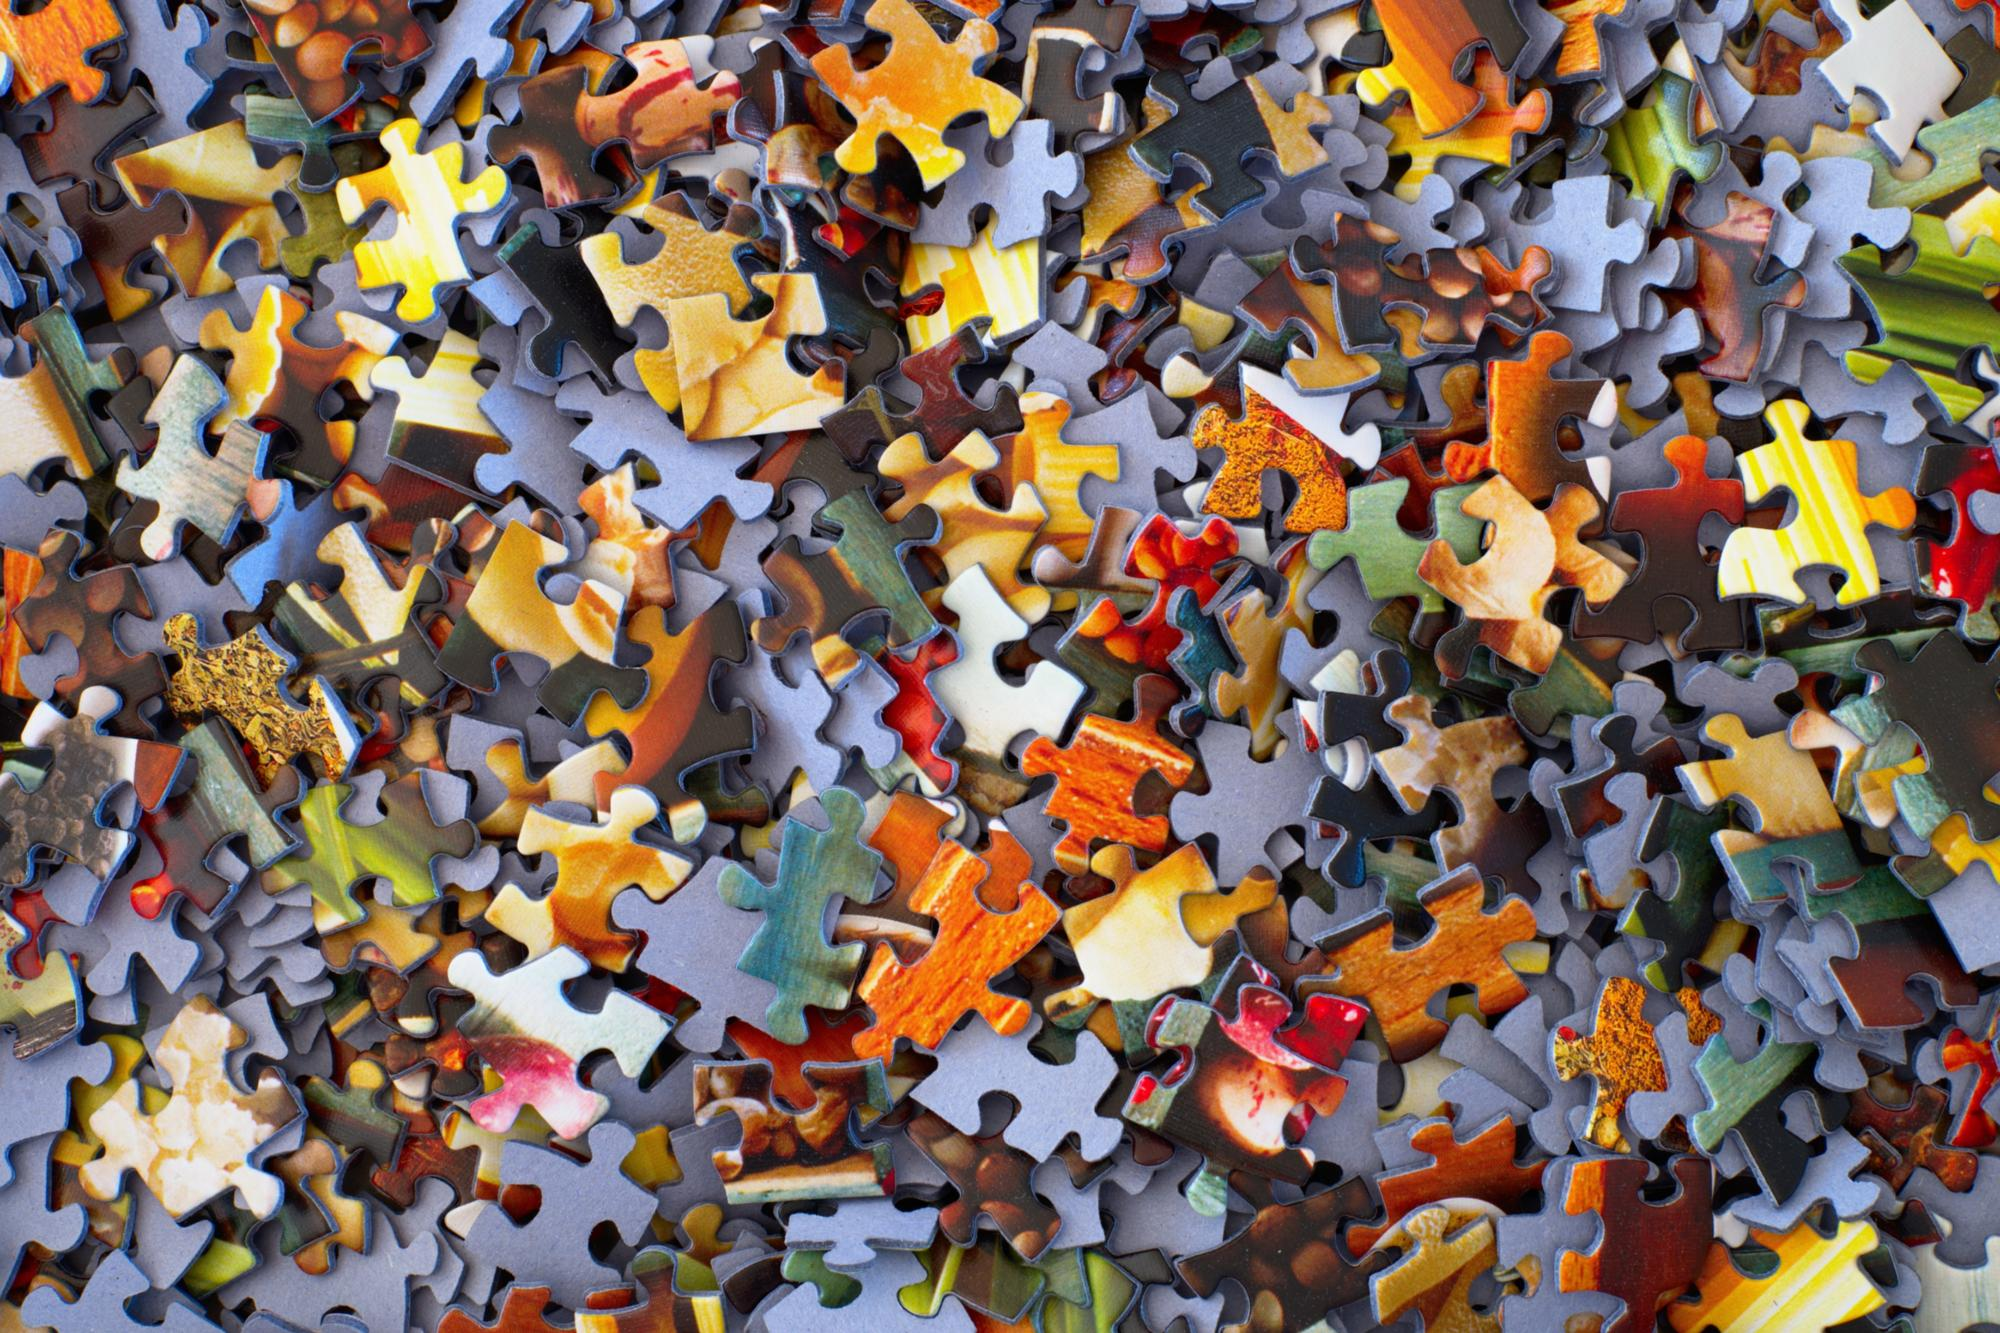 Puzzleteile (c) Photo by Hans-Peter Gauster on Unsplash